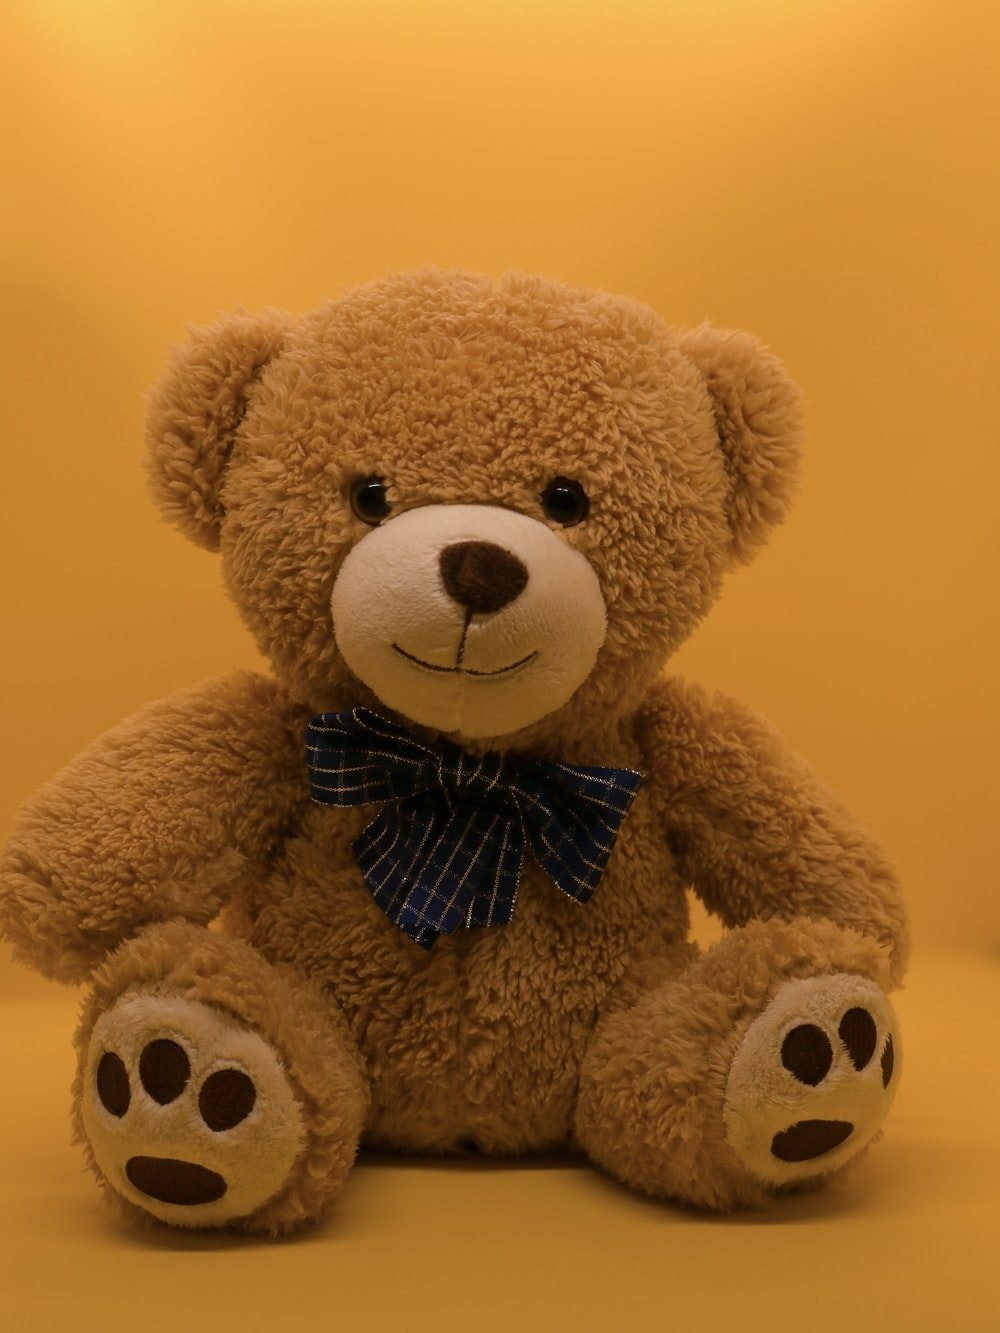 brown teddy bear with black and white bow tie